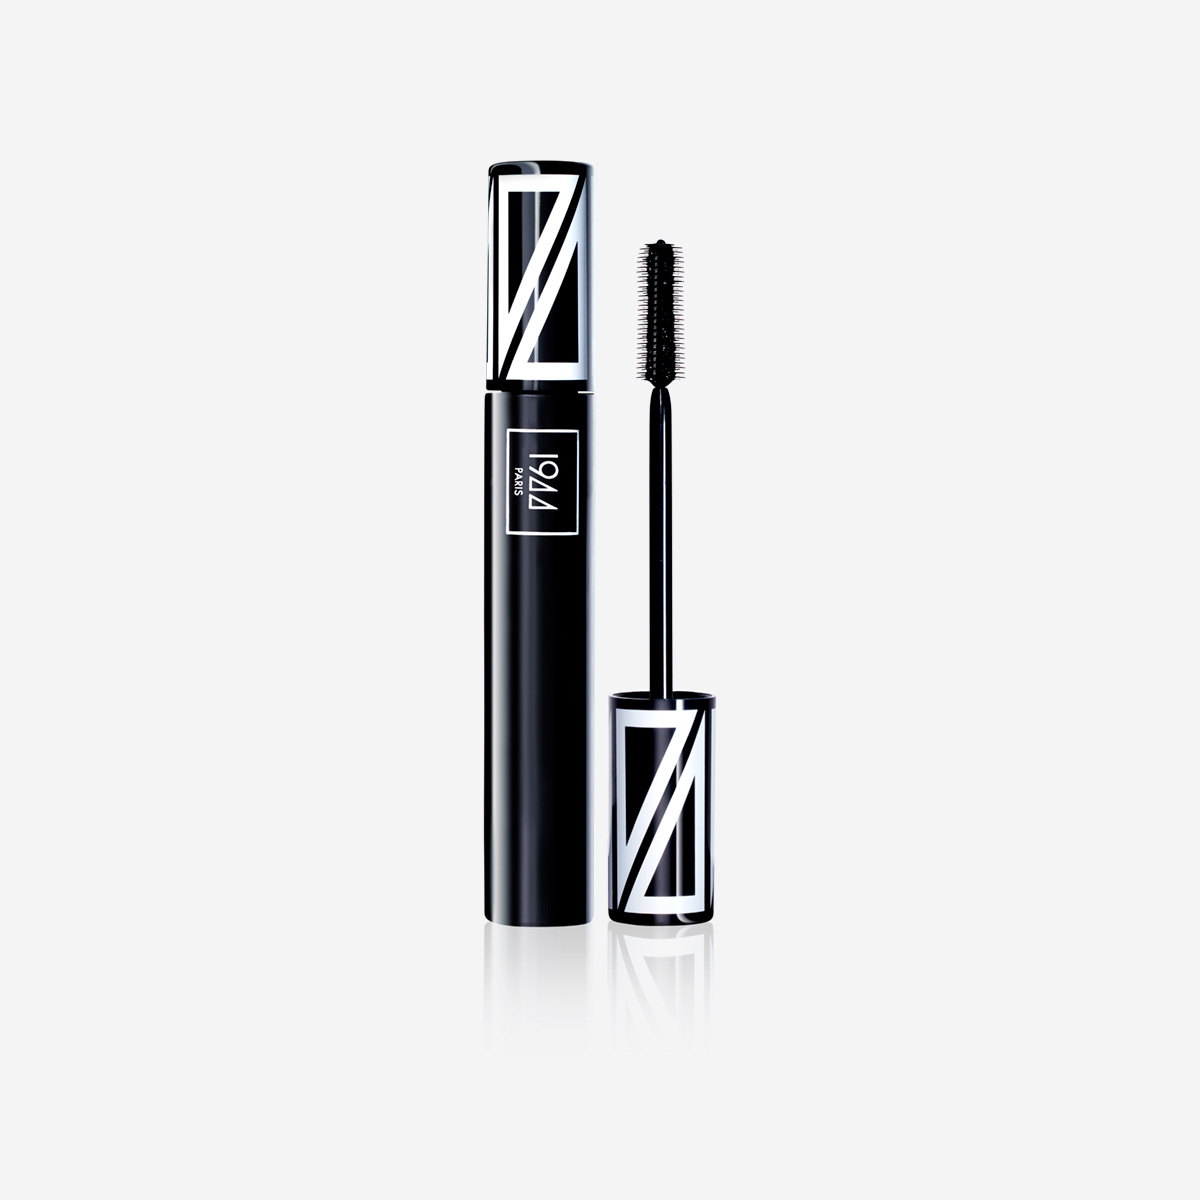 Le Mascara Volume Intense 1944 - Intense volumizing mascara